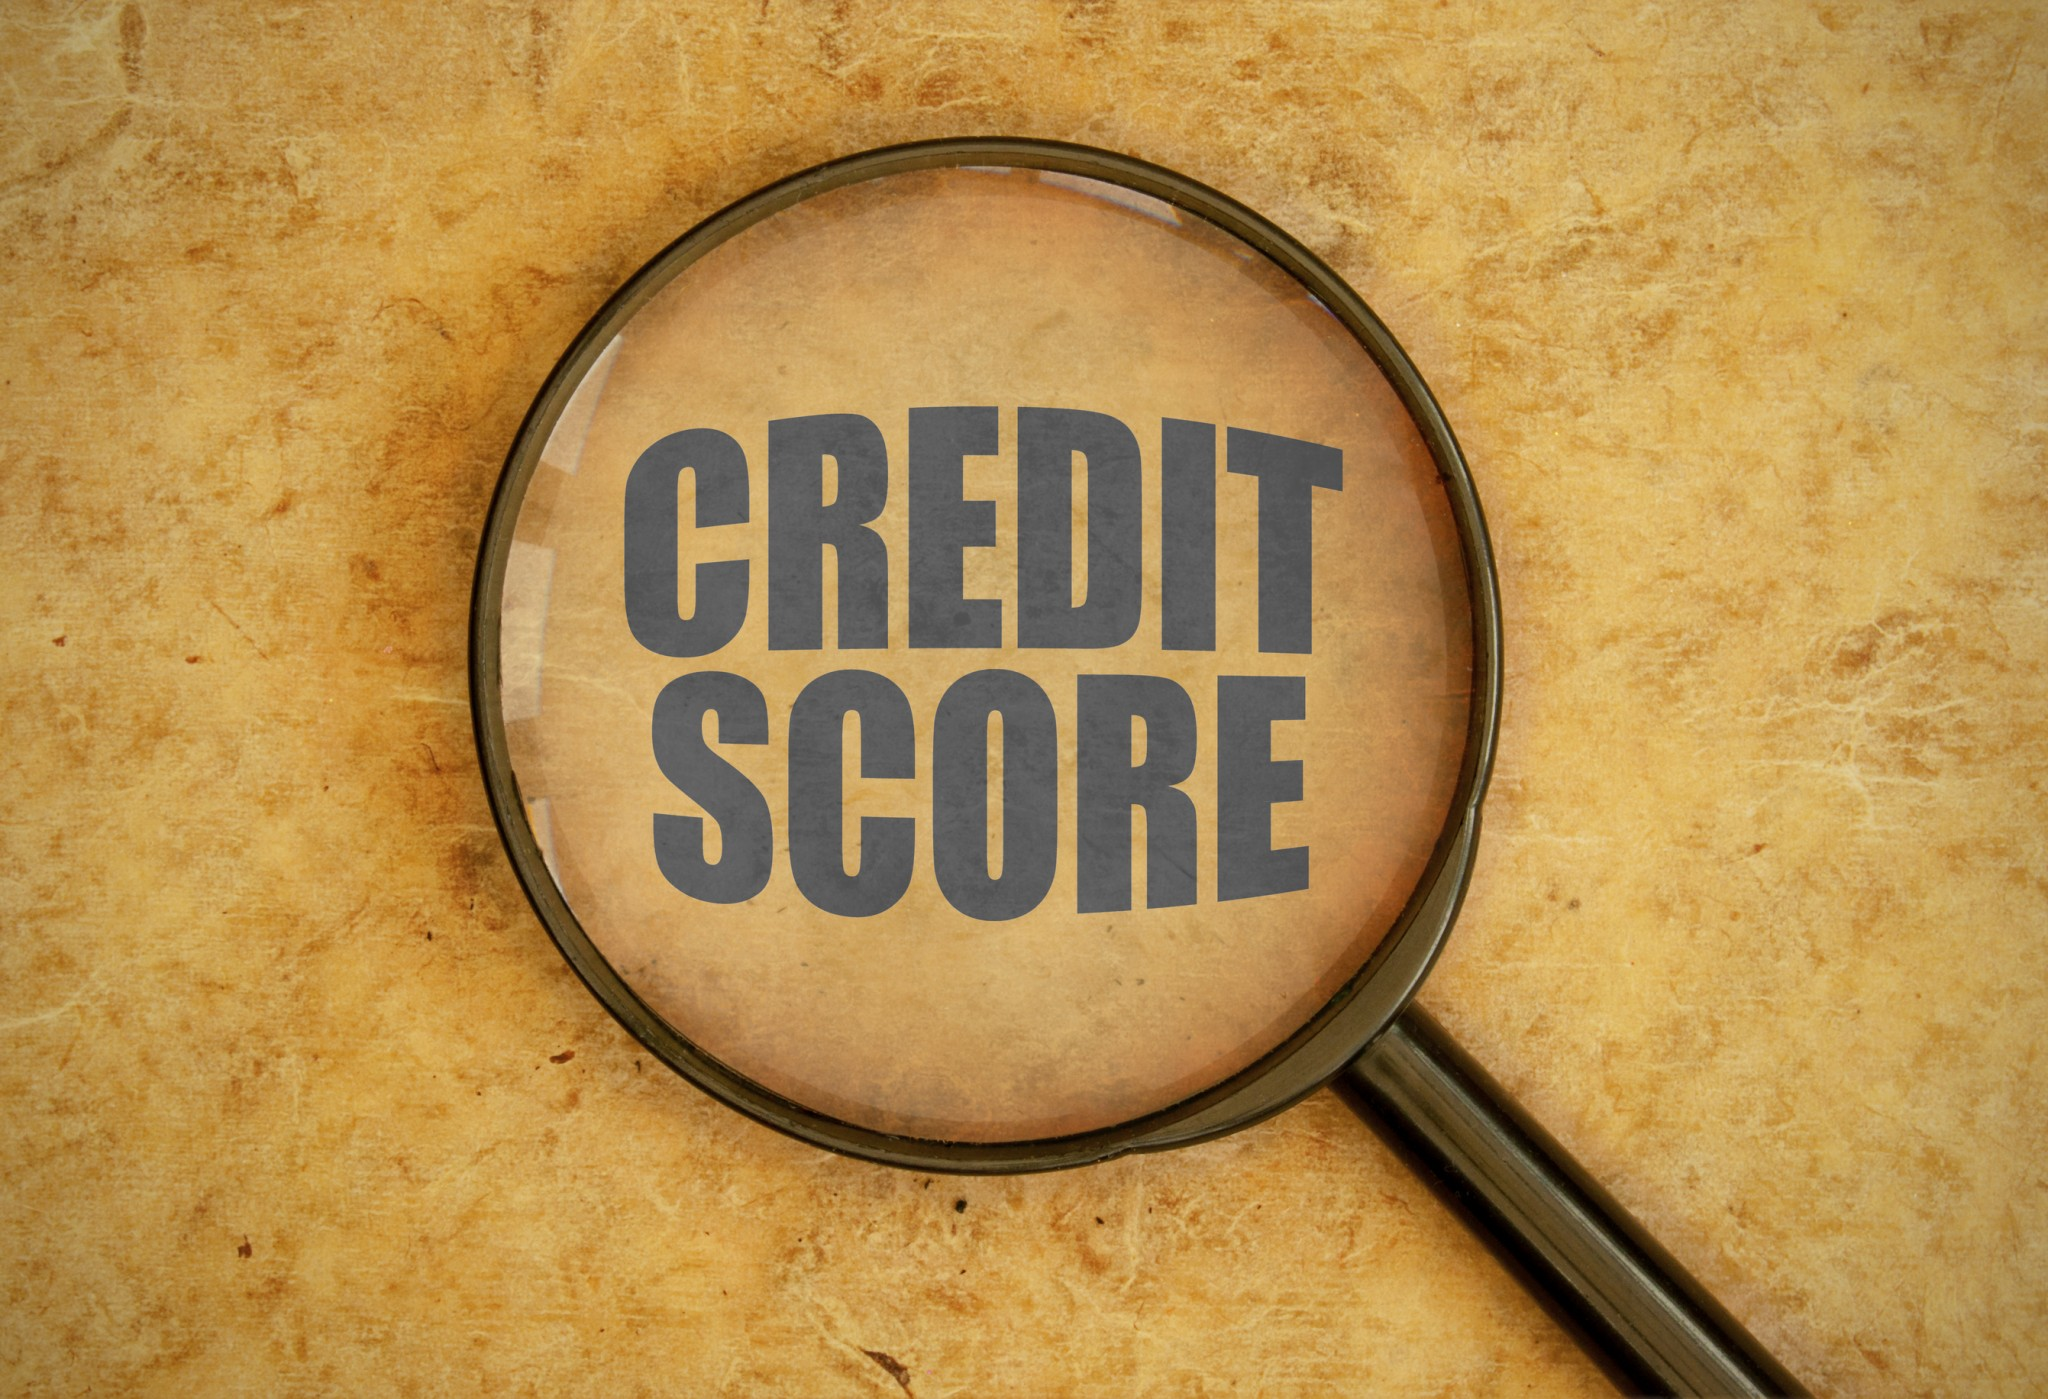 Use a Credit Score Simulator to Road Test Financial Decisions